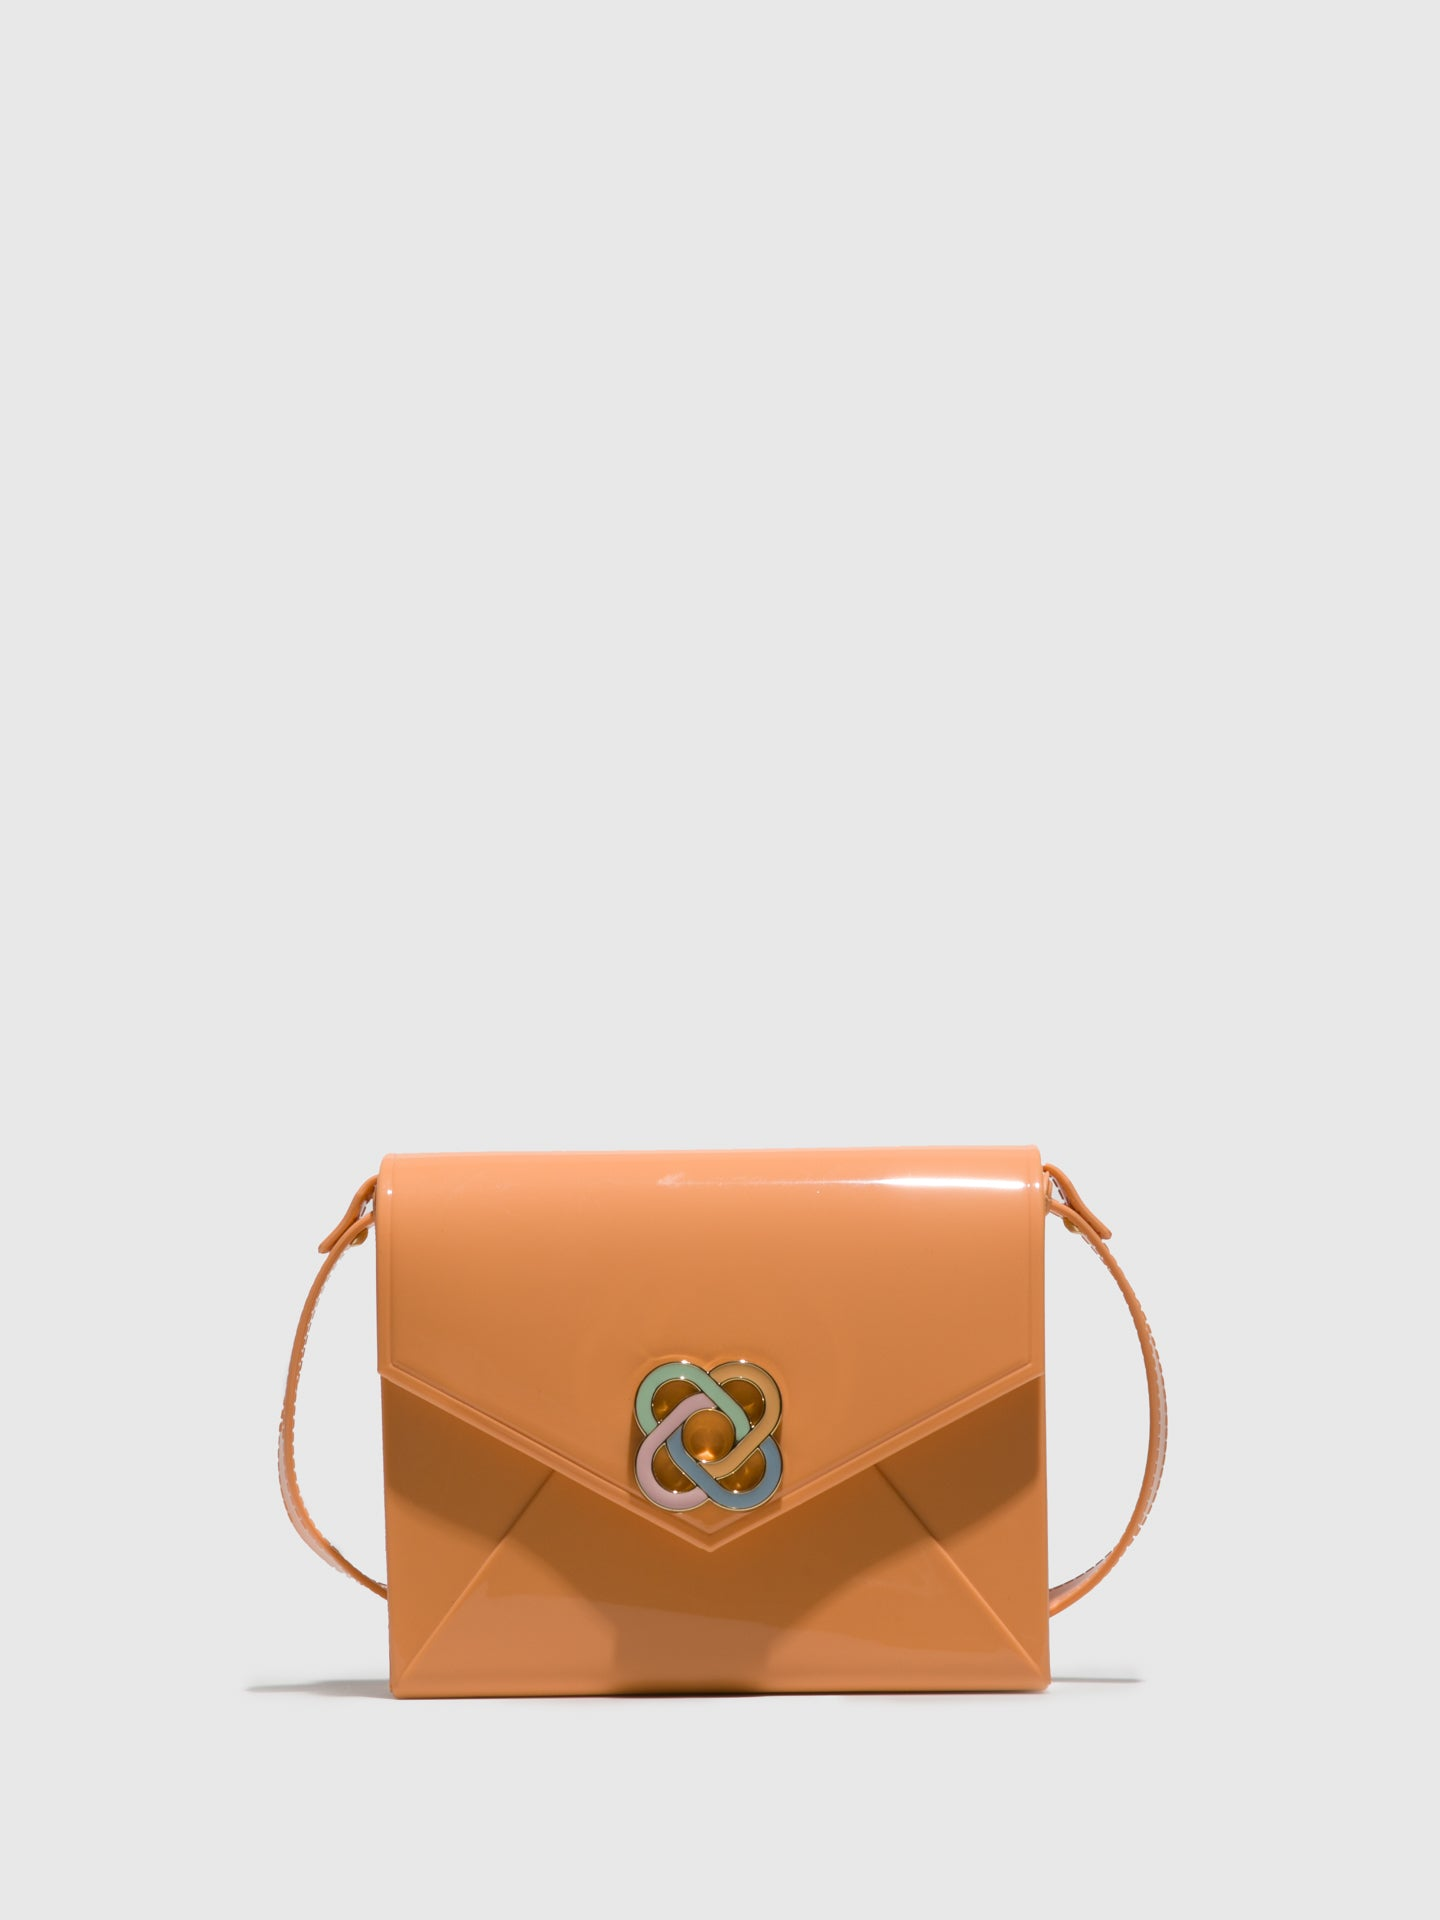 Petite Jolie By Parodi Orange Crossbody Bag